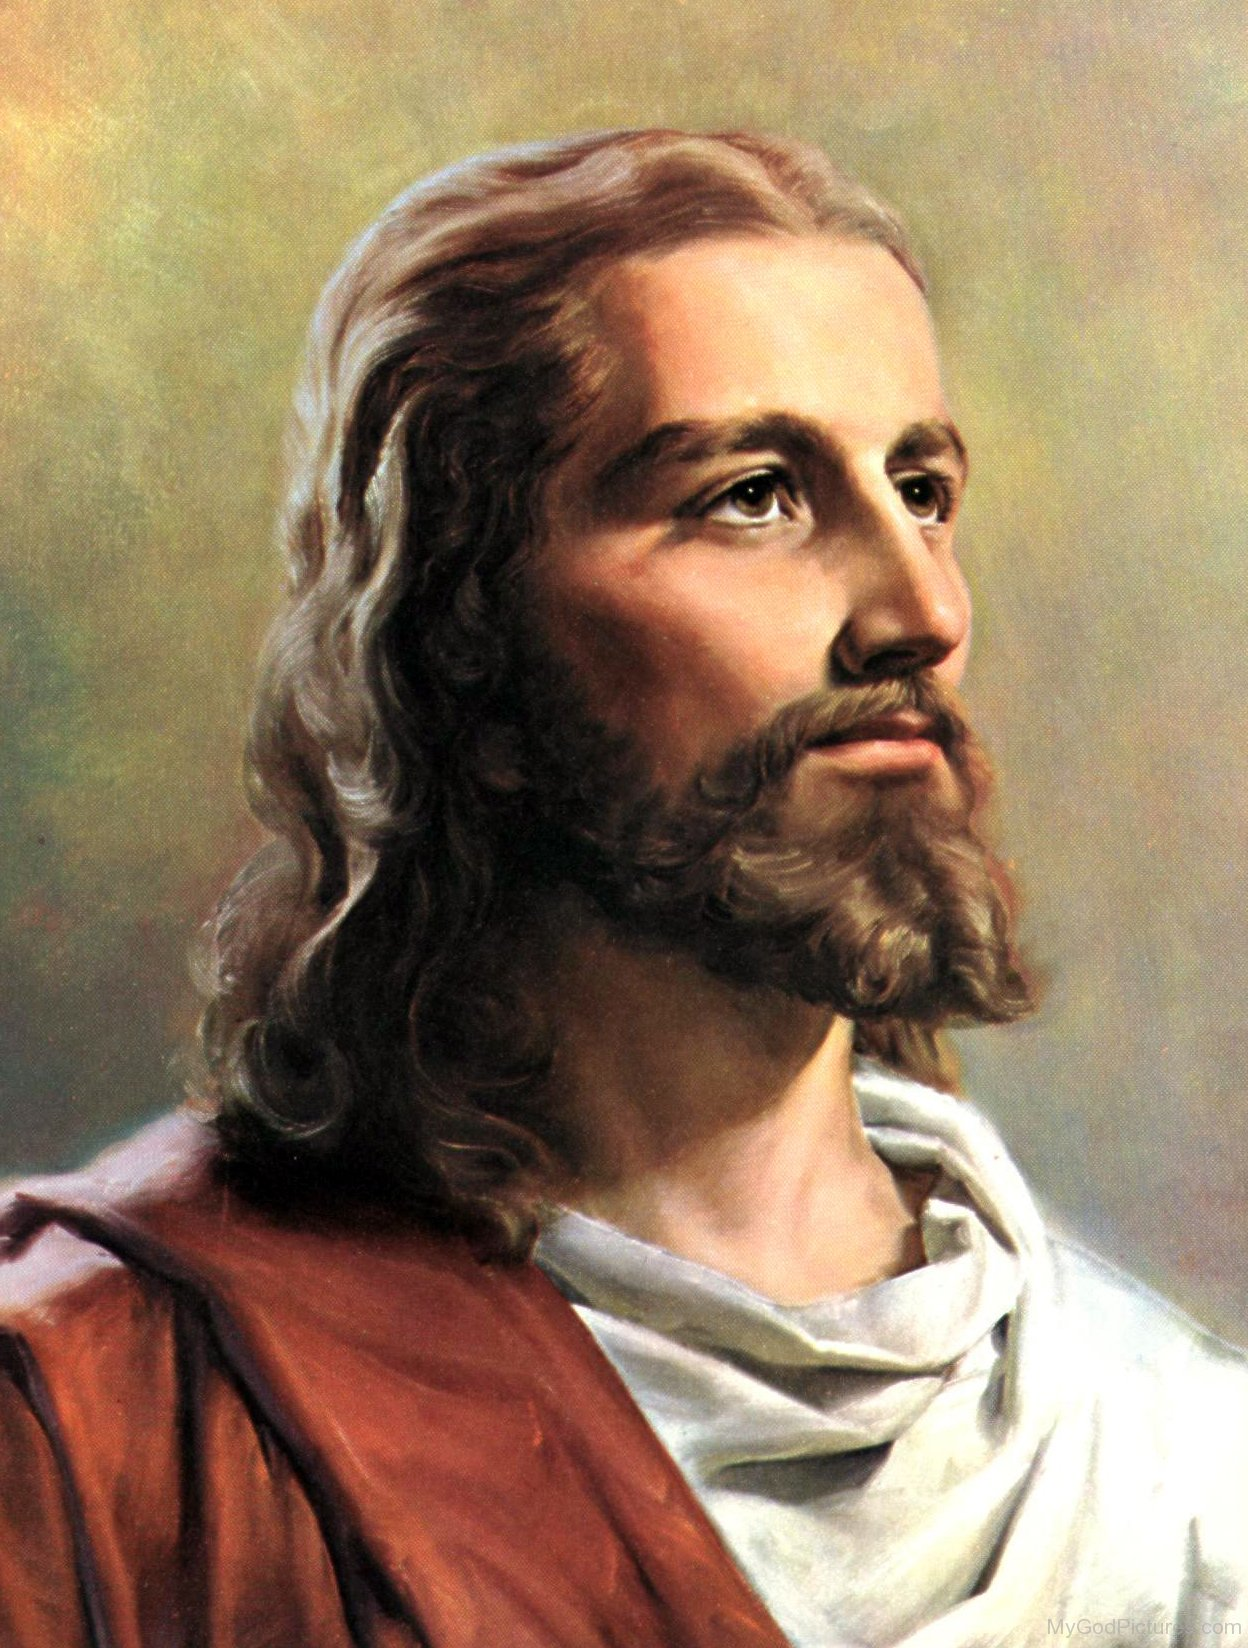 Jesus Christs face recreated using Semite skulls by